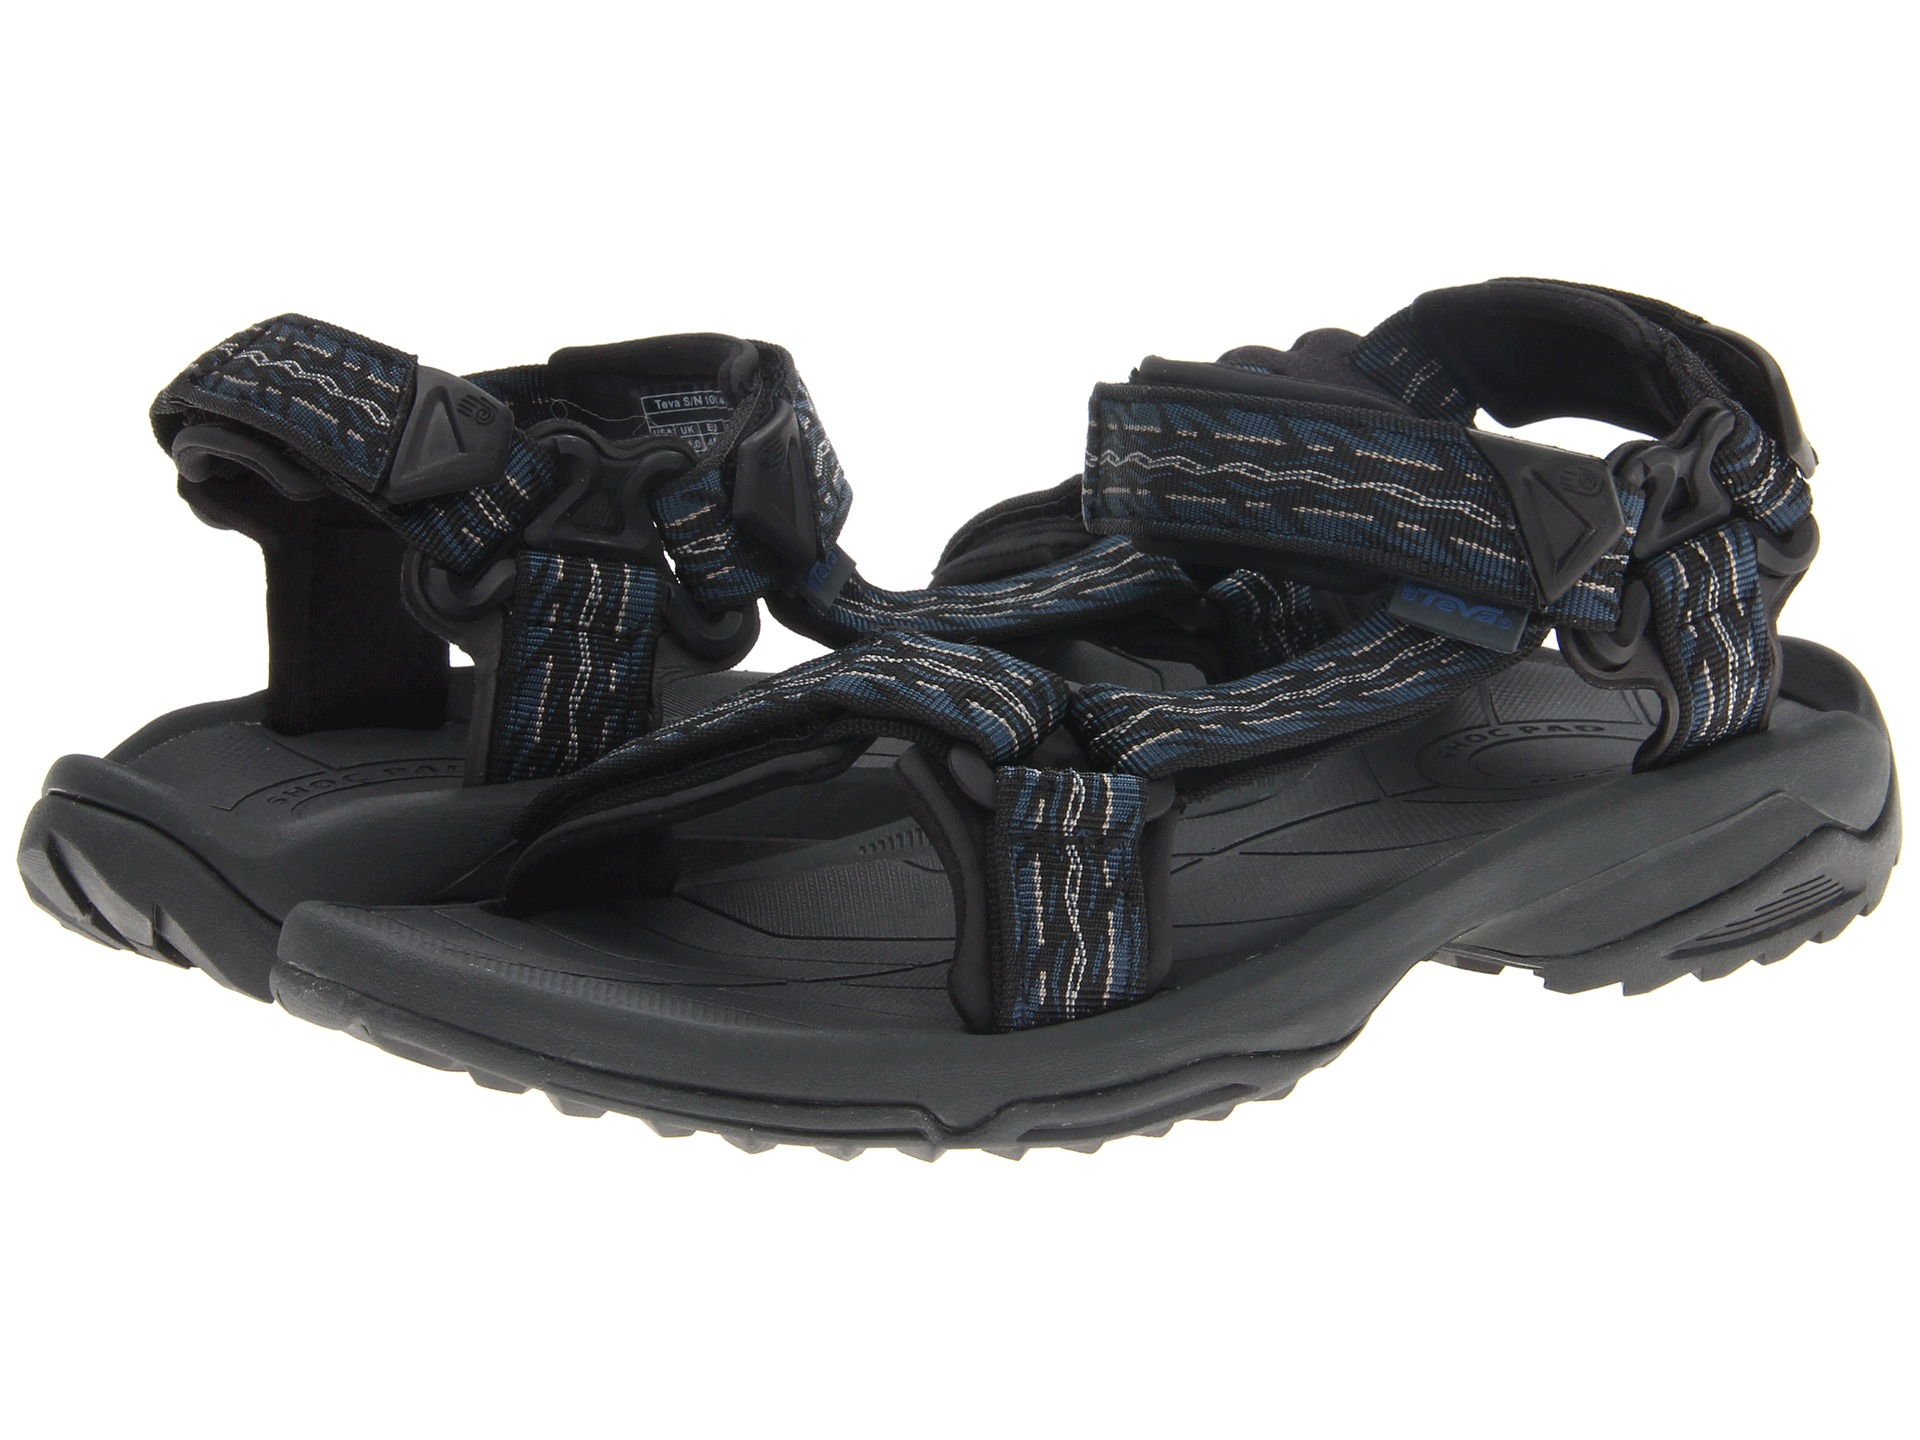 FREE Shipping on eligible orders. Some sizes/colors are Prime eligible. out of 5 stars 7, Product Features River guide, Teva pioneered the sport-sandal category. For more Teva Men's M Terra Fi 4 Sandal. by Teva. $ - $ $ 92 $ 00 Prime. FREE Shipping on eligible orders.